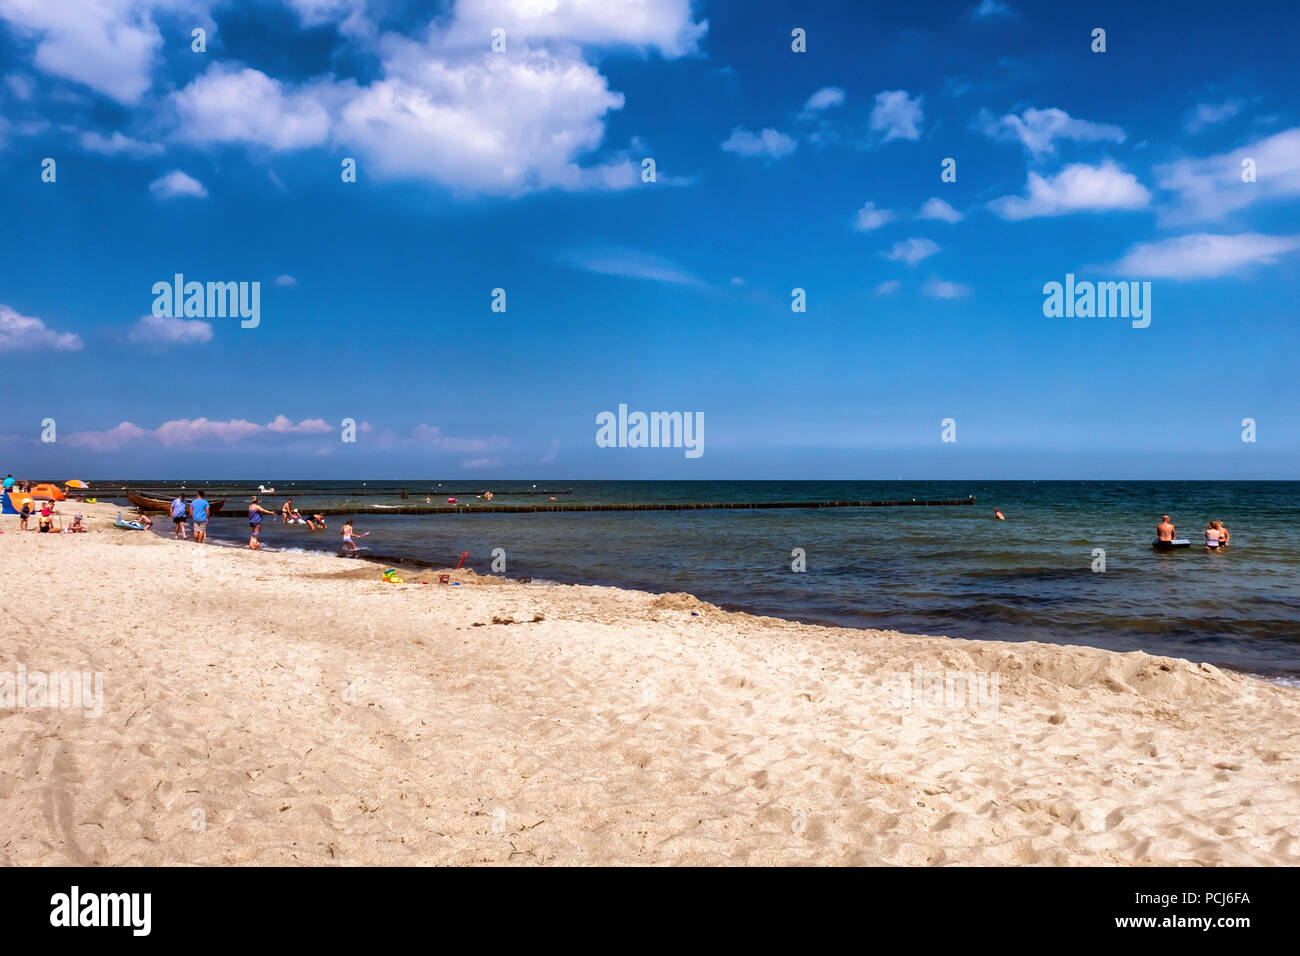 Germany Loddin,Stubbenfelde Beach. Coastal bathing resort on the island of Usedom on the Baltic Sea. Sandy beach, people swimming in tranquil sea. - Stock Image